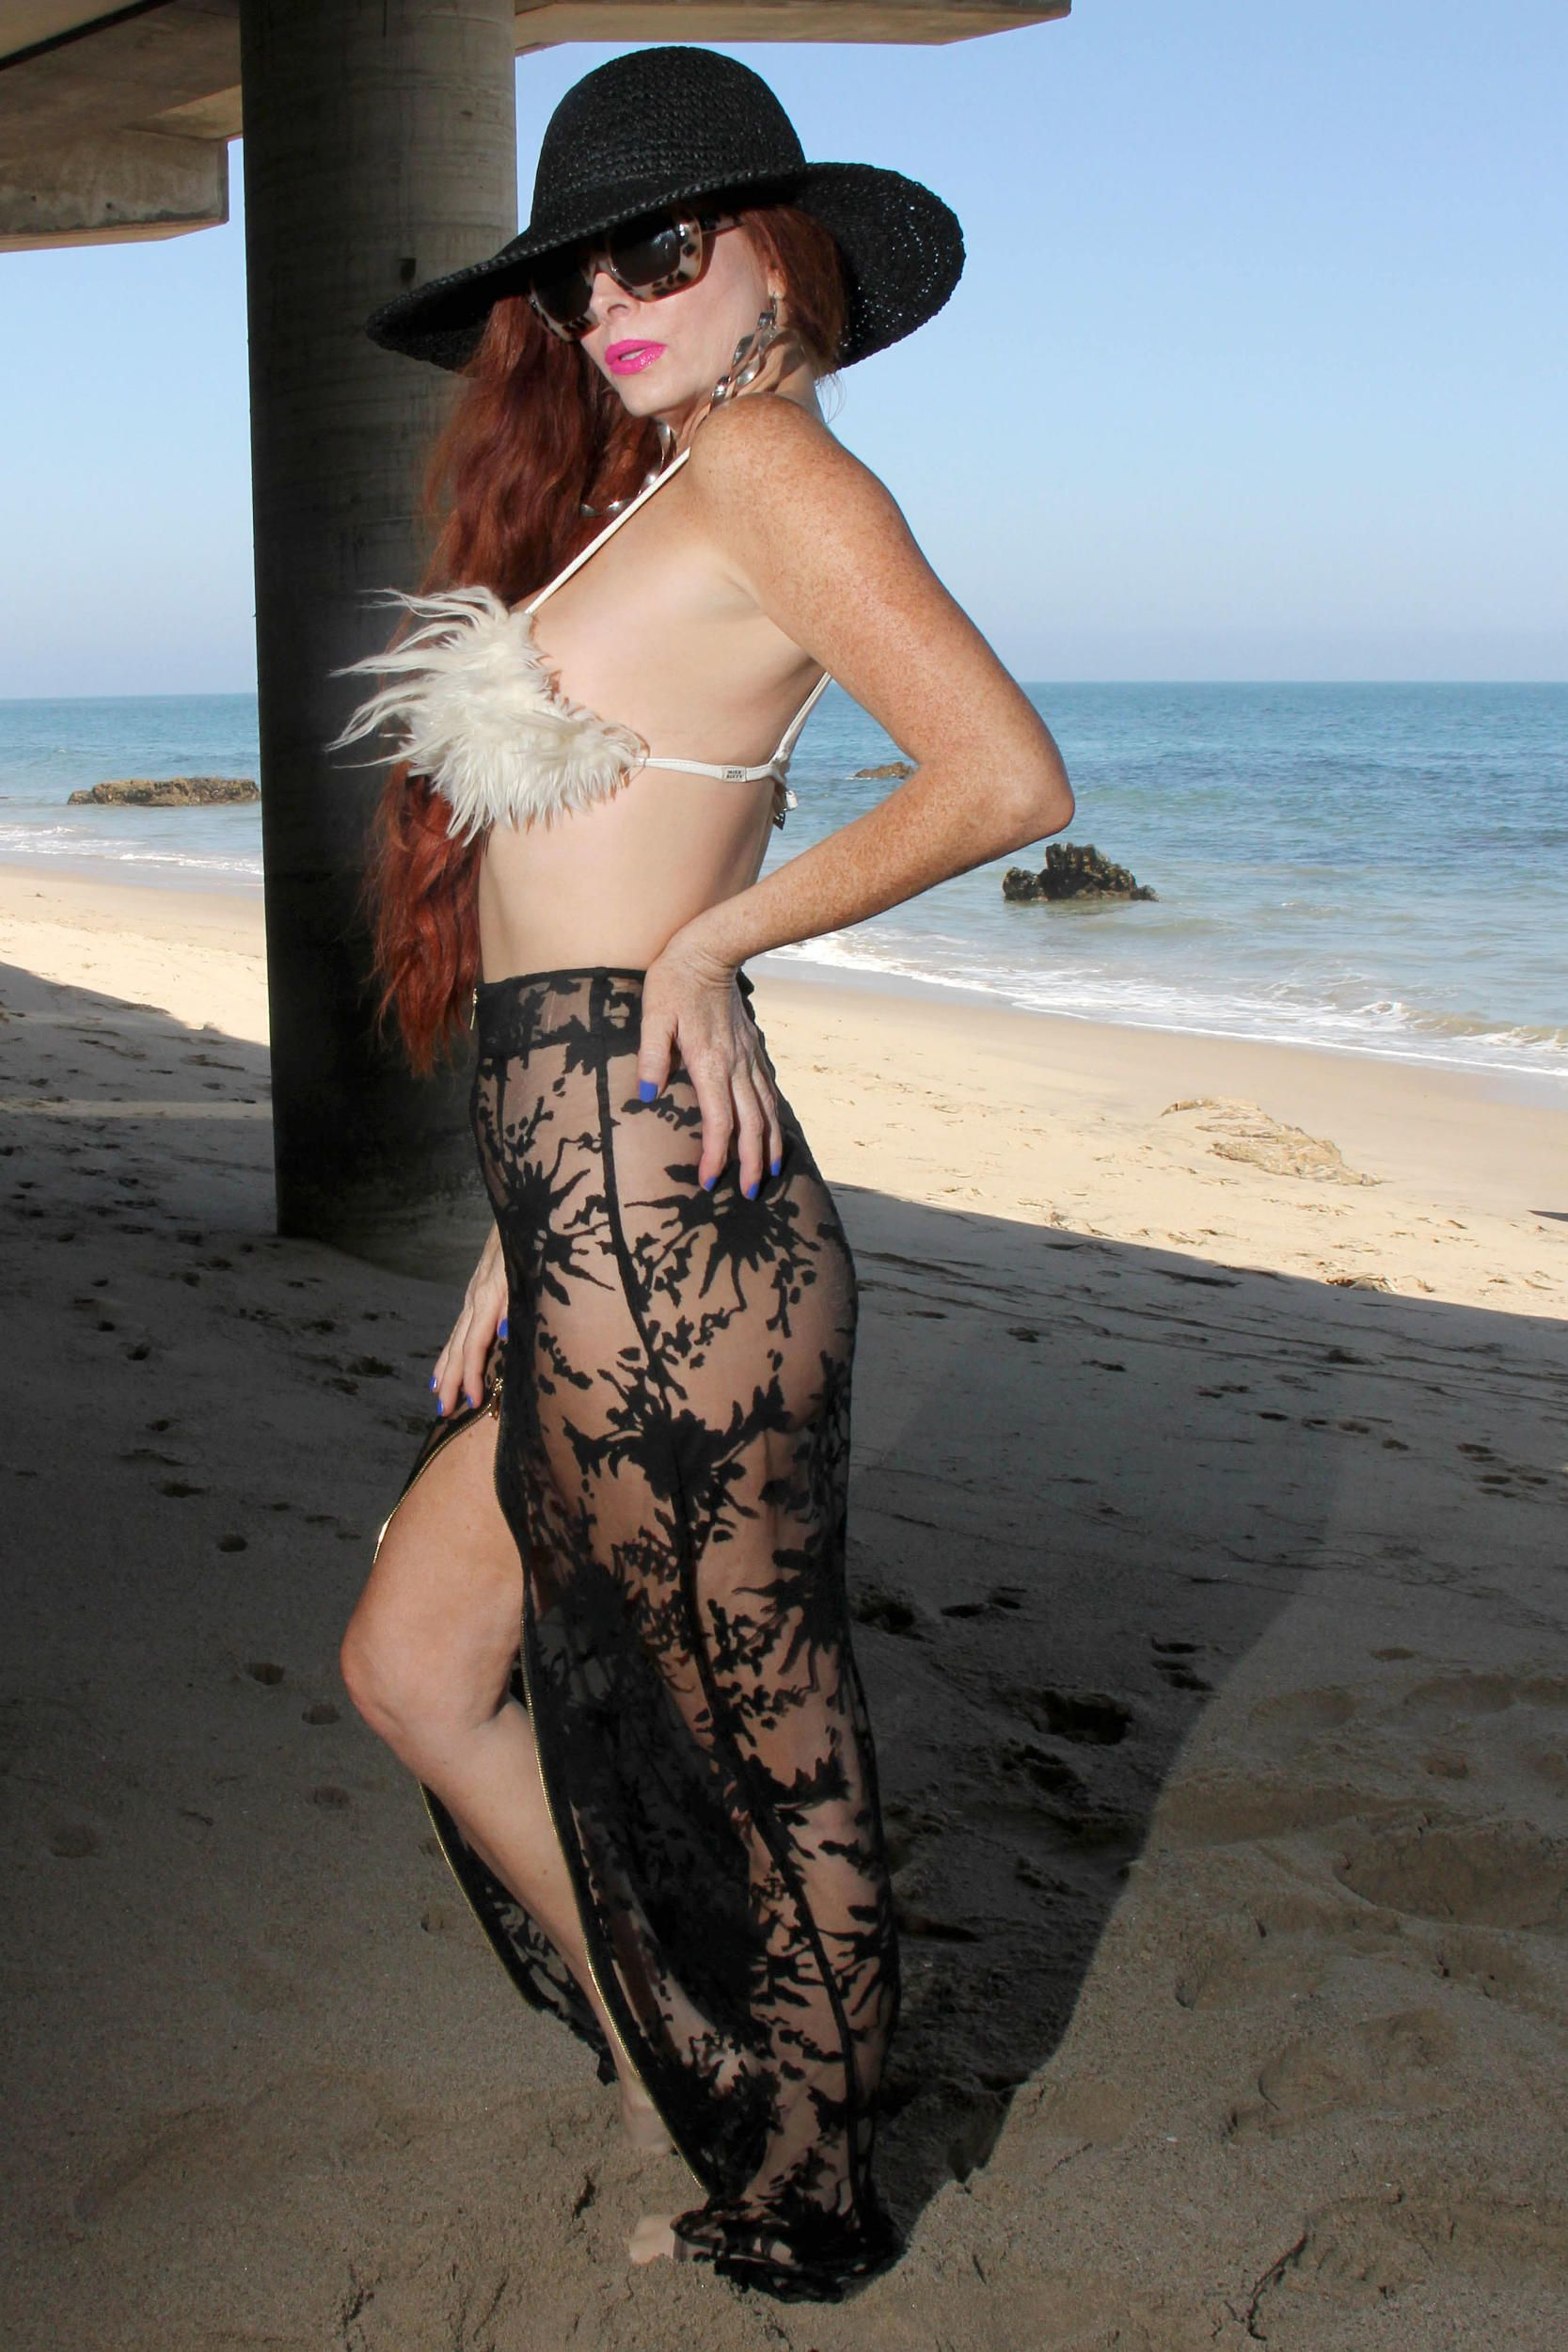 Phoebe Price Topless 7 TheFappening.nu